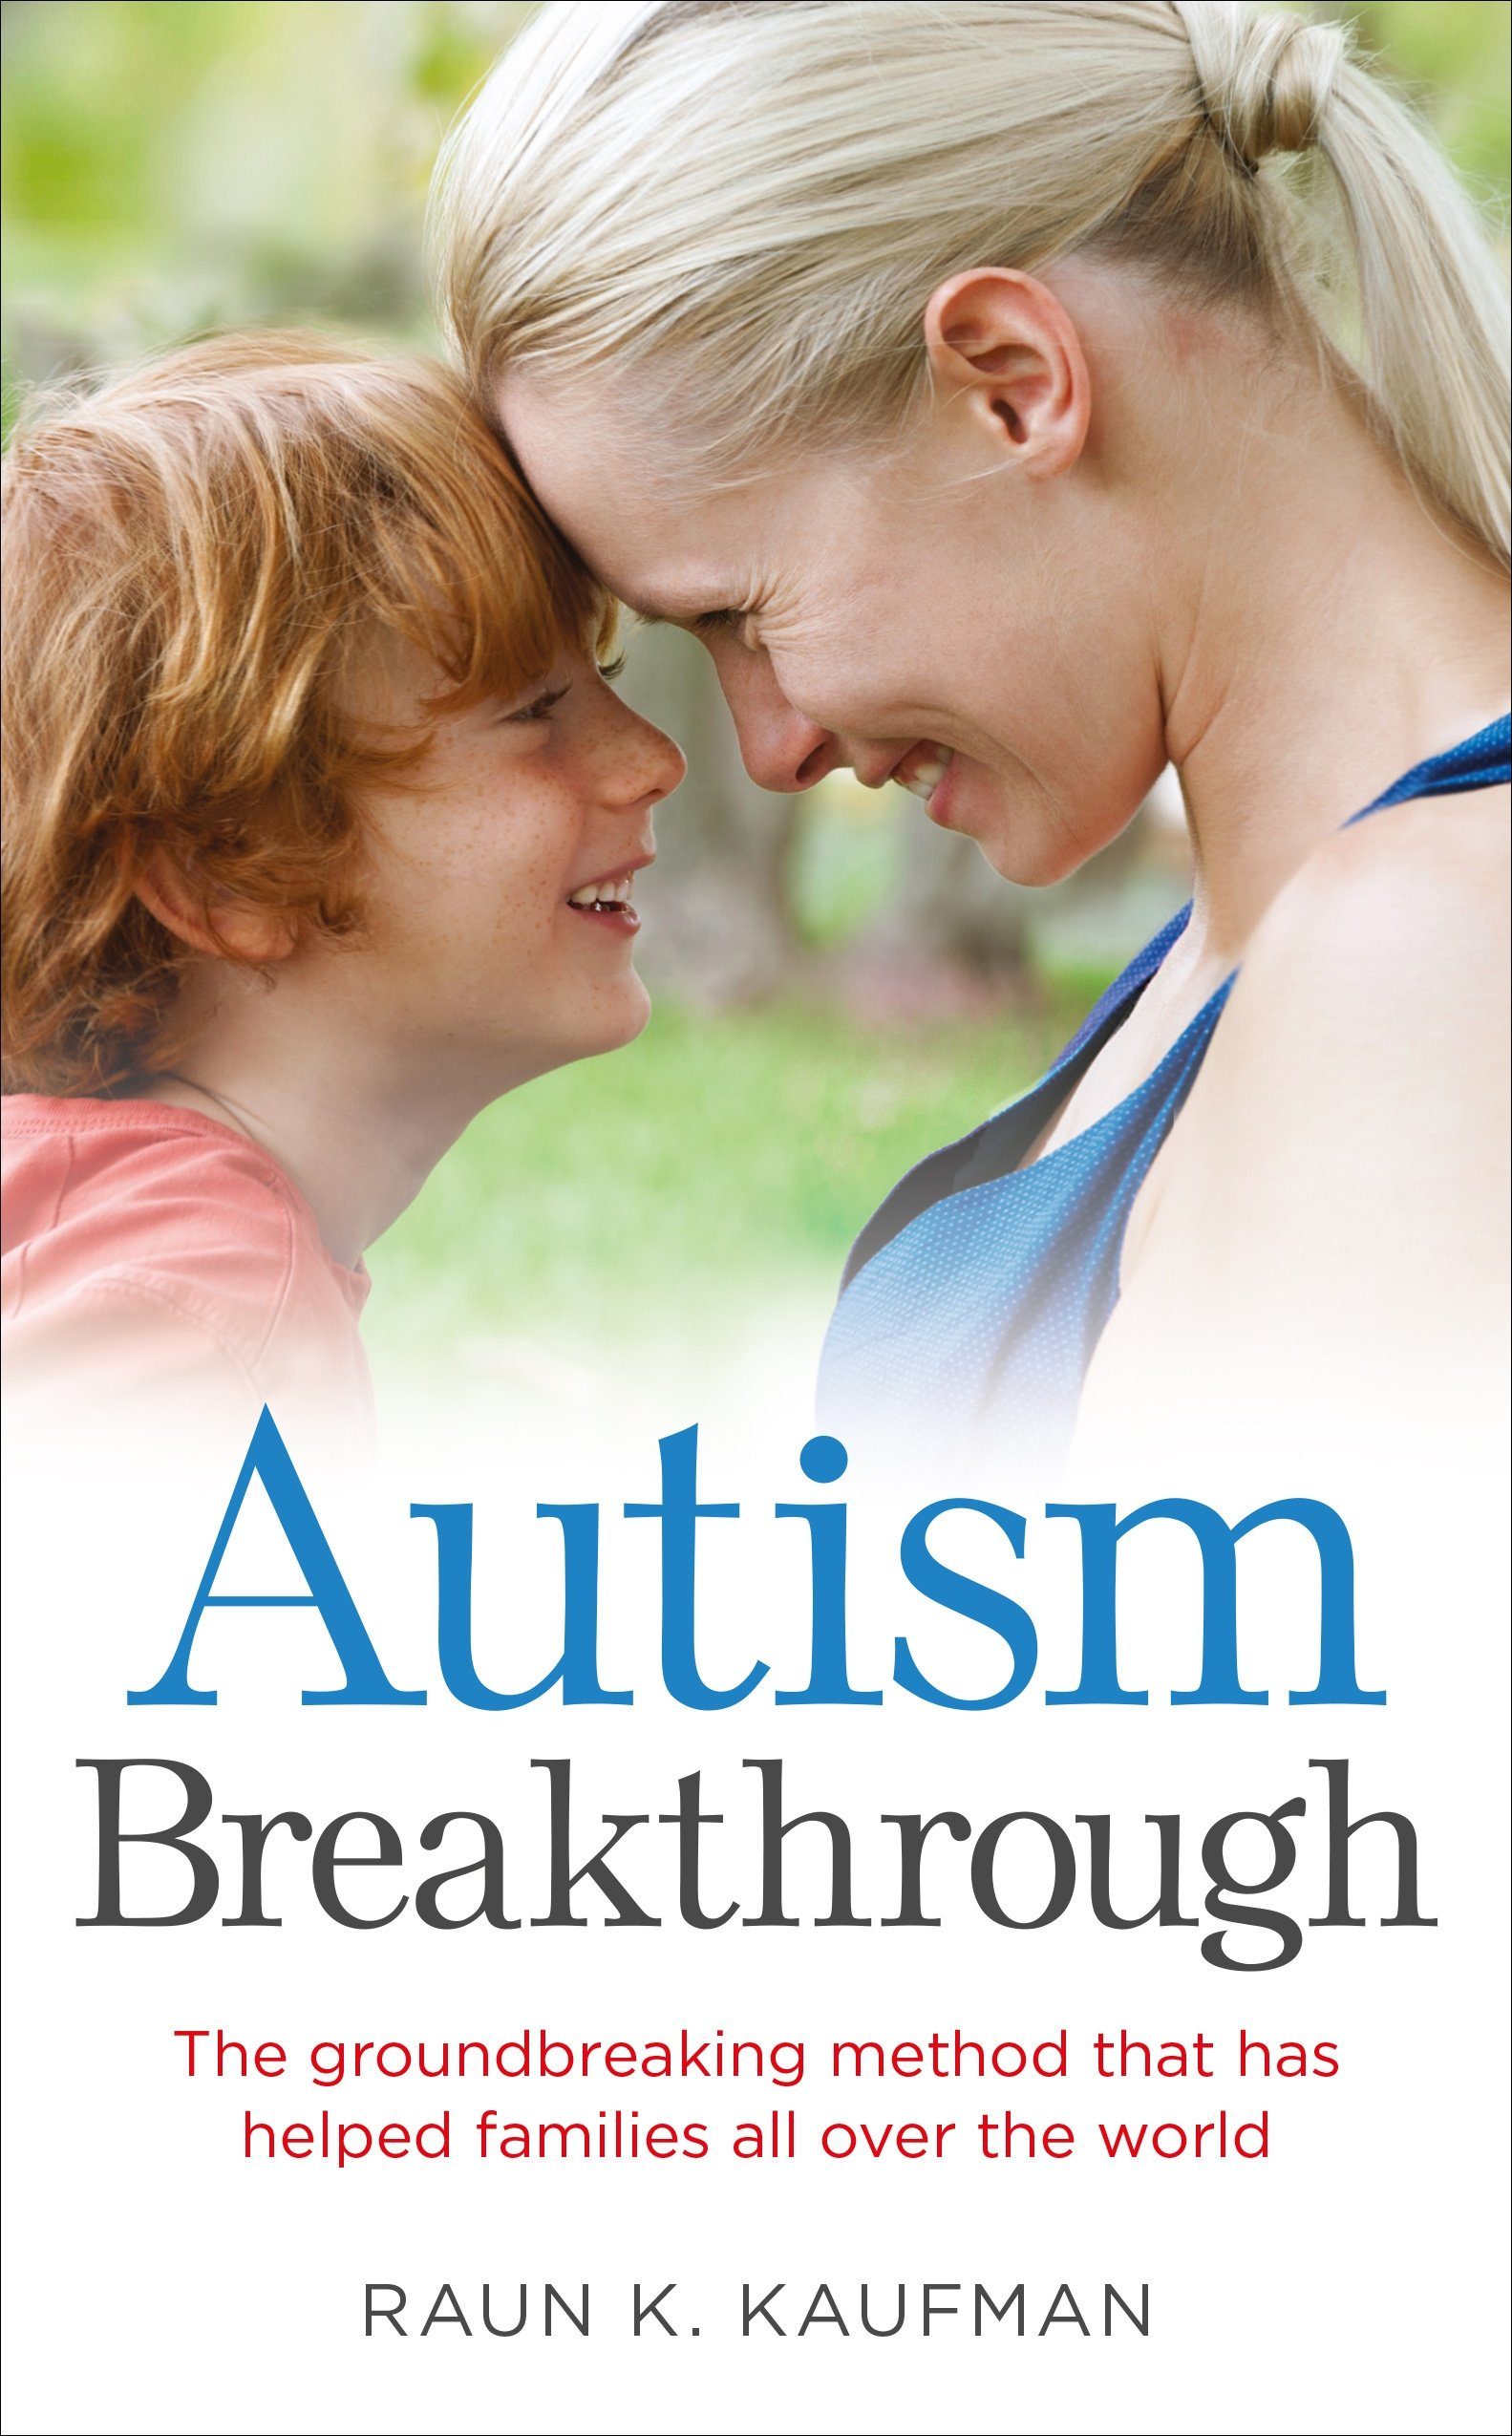 Healing And Preventing Autism A plete Guide Amazon